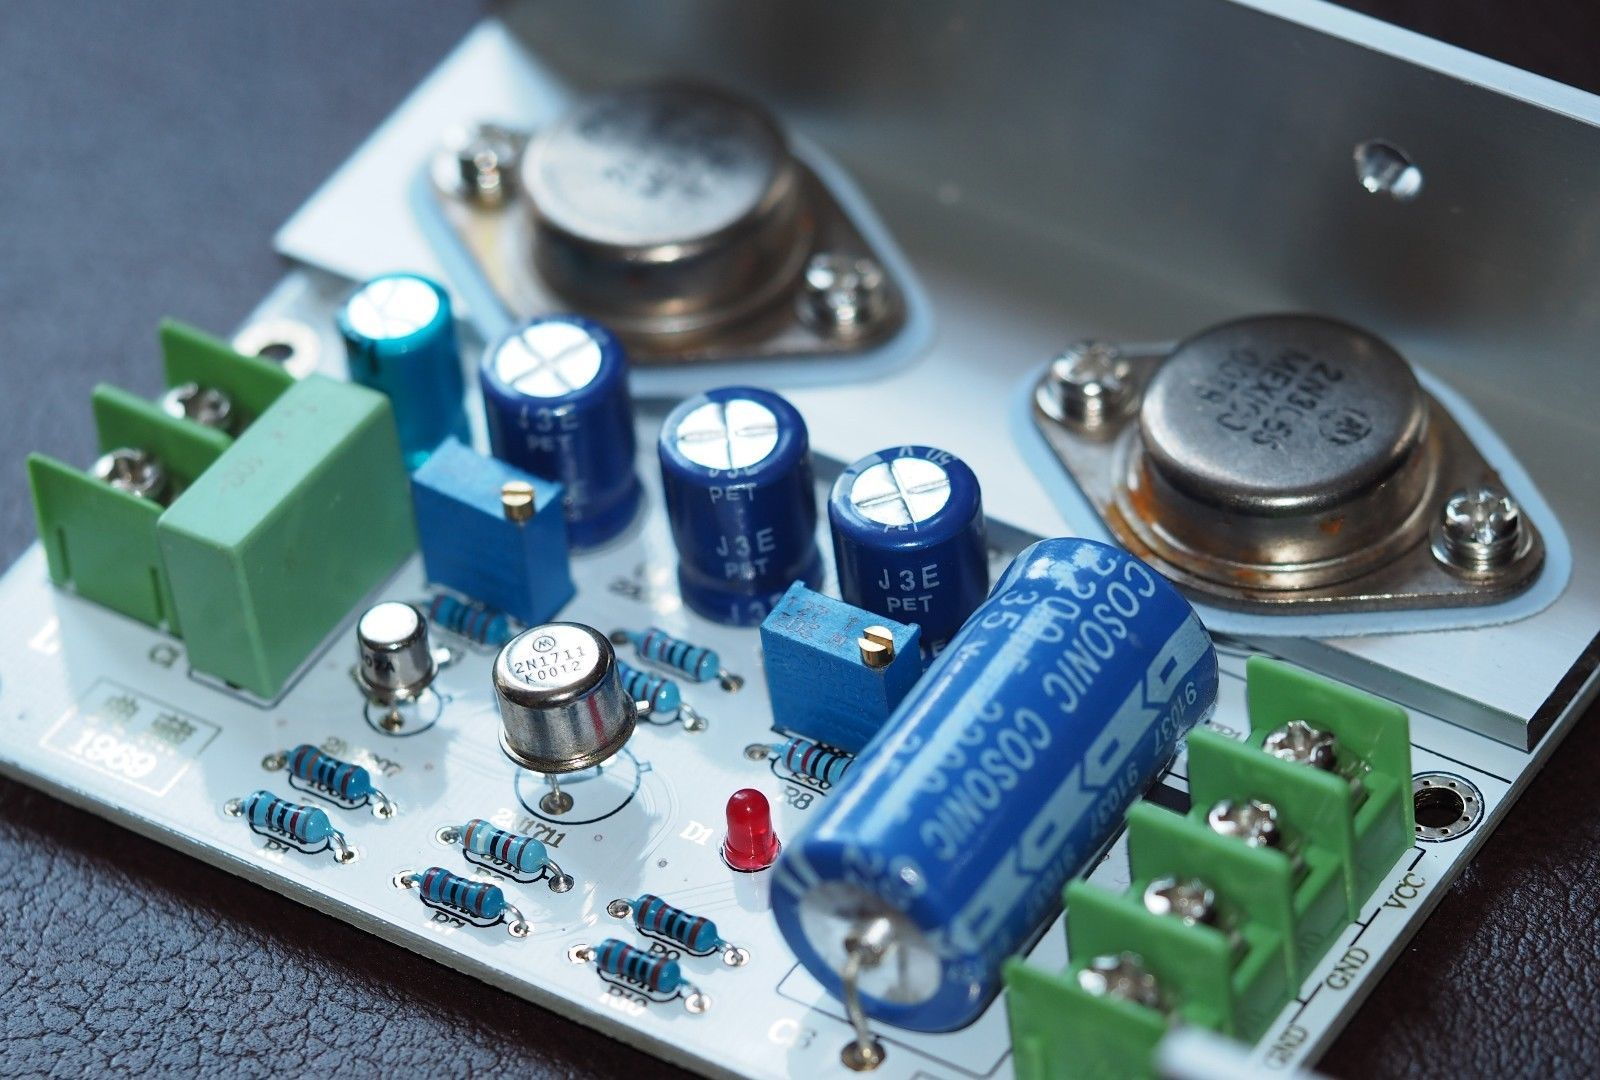 Jlh 1969 Class A Amplifier Stereo High And 50 Similar Items The Classa Site Classab Quality Pcb Components Assembled